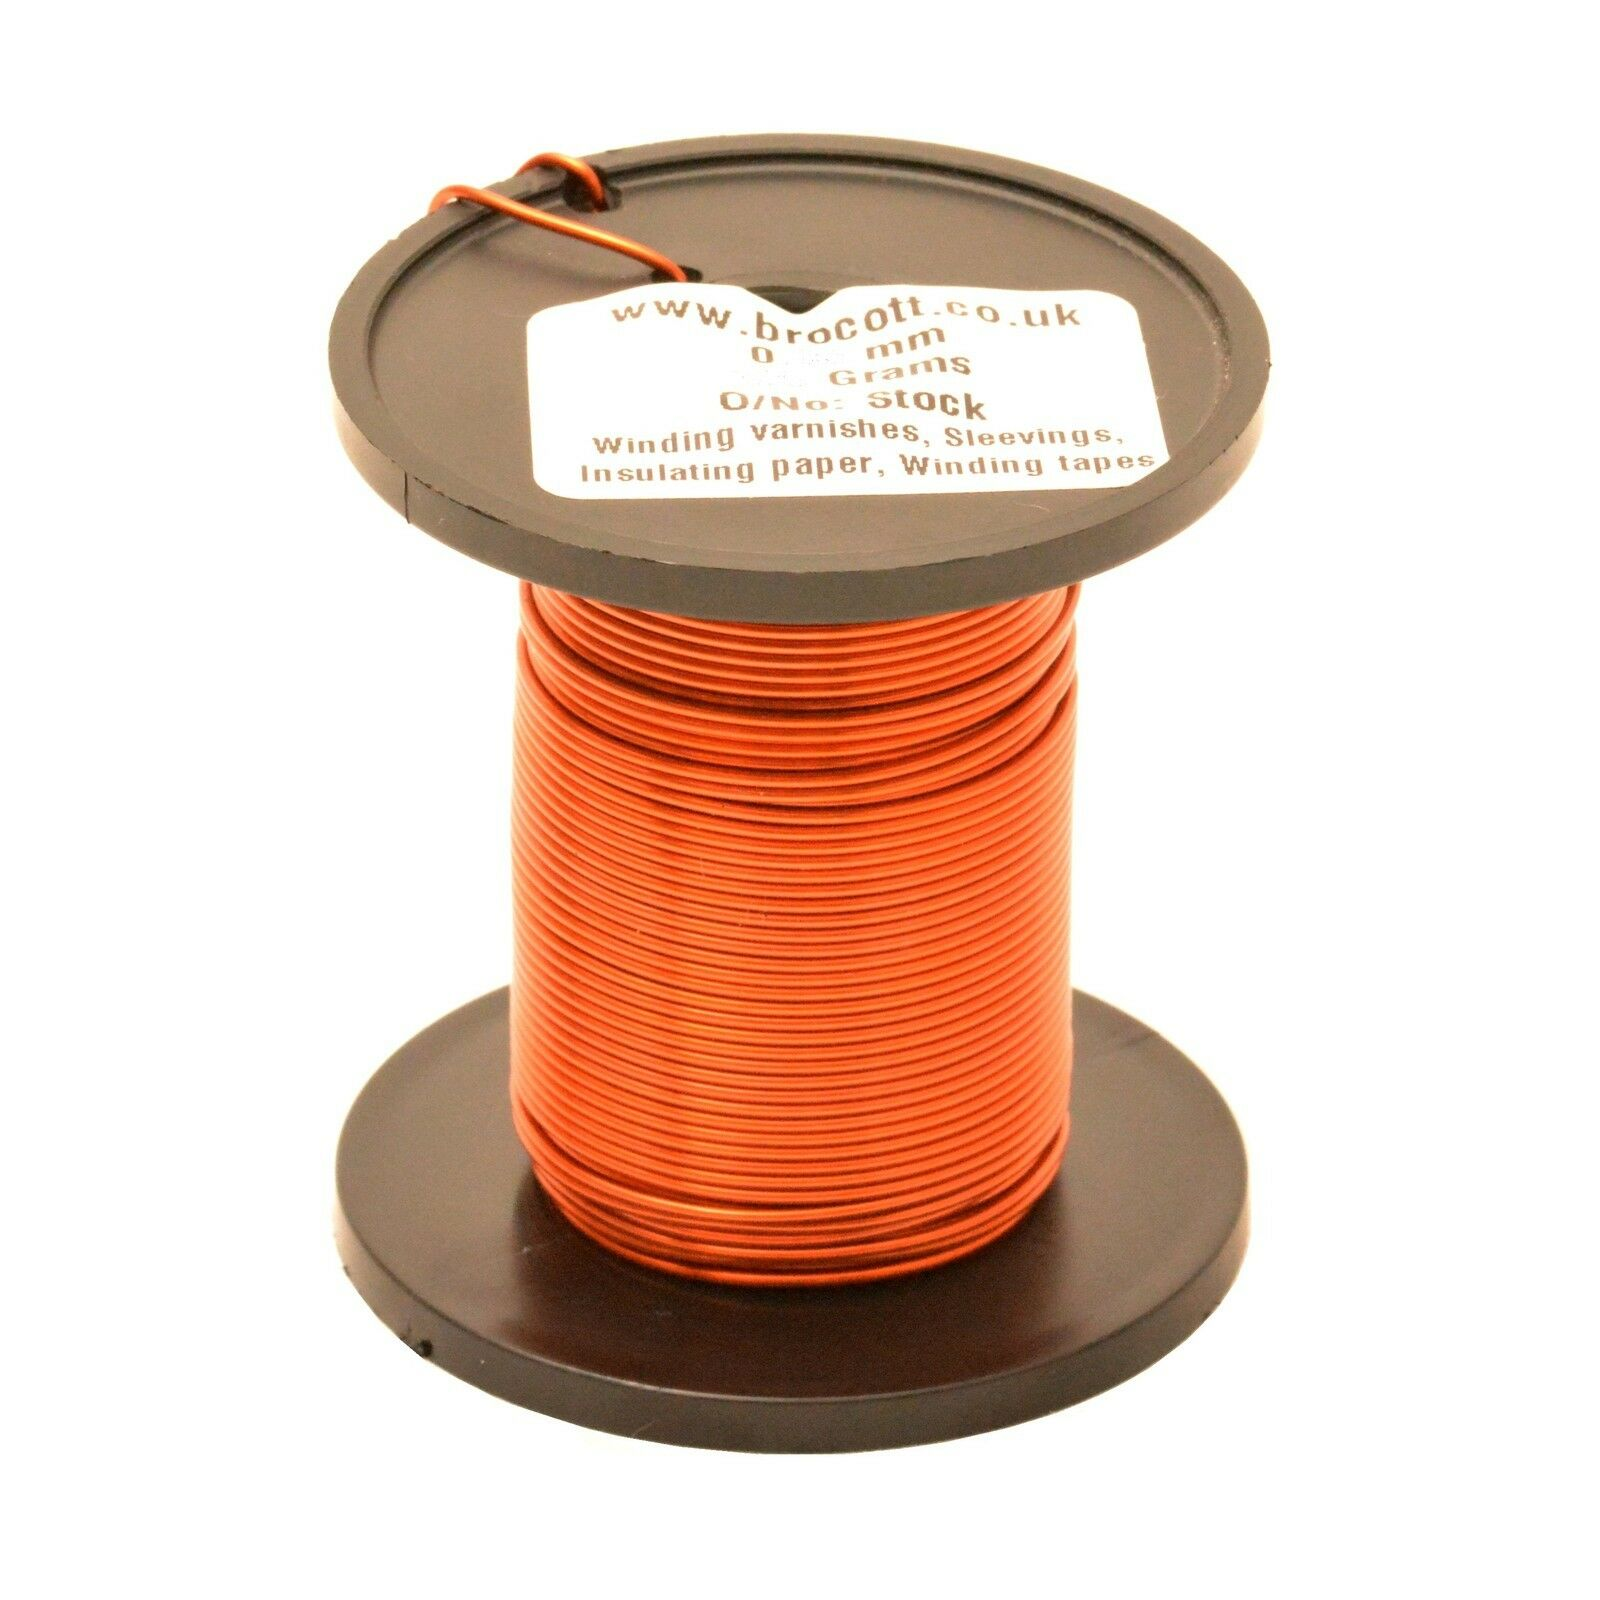 2.00MM ENAMELLED COPPER WIRE - COIL WIRE, HIGH TEMPERATURE MAGNET ...